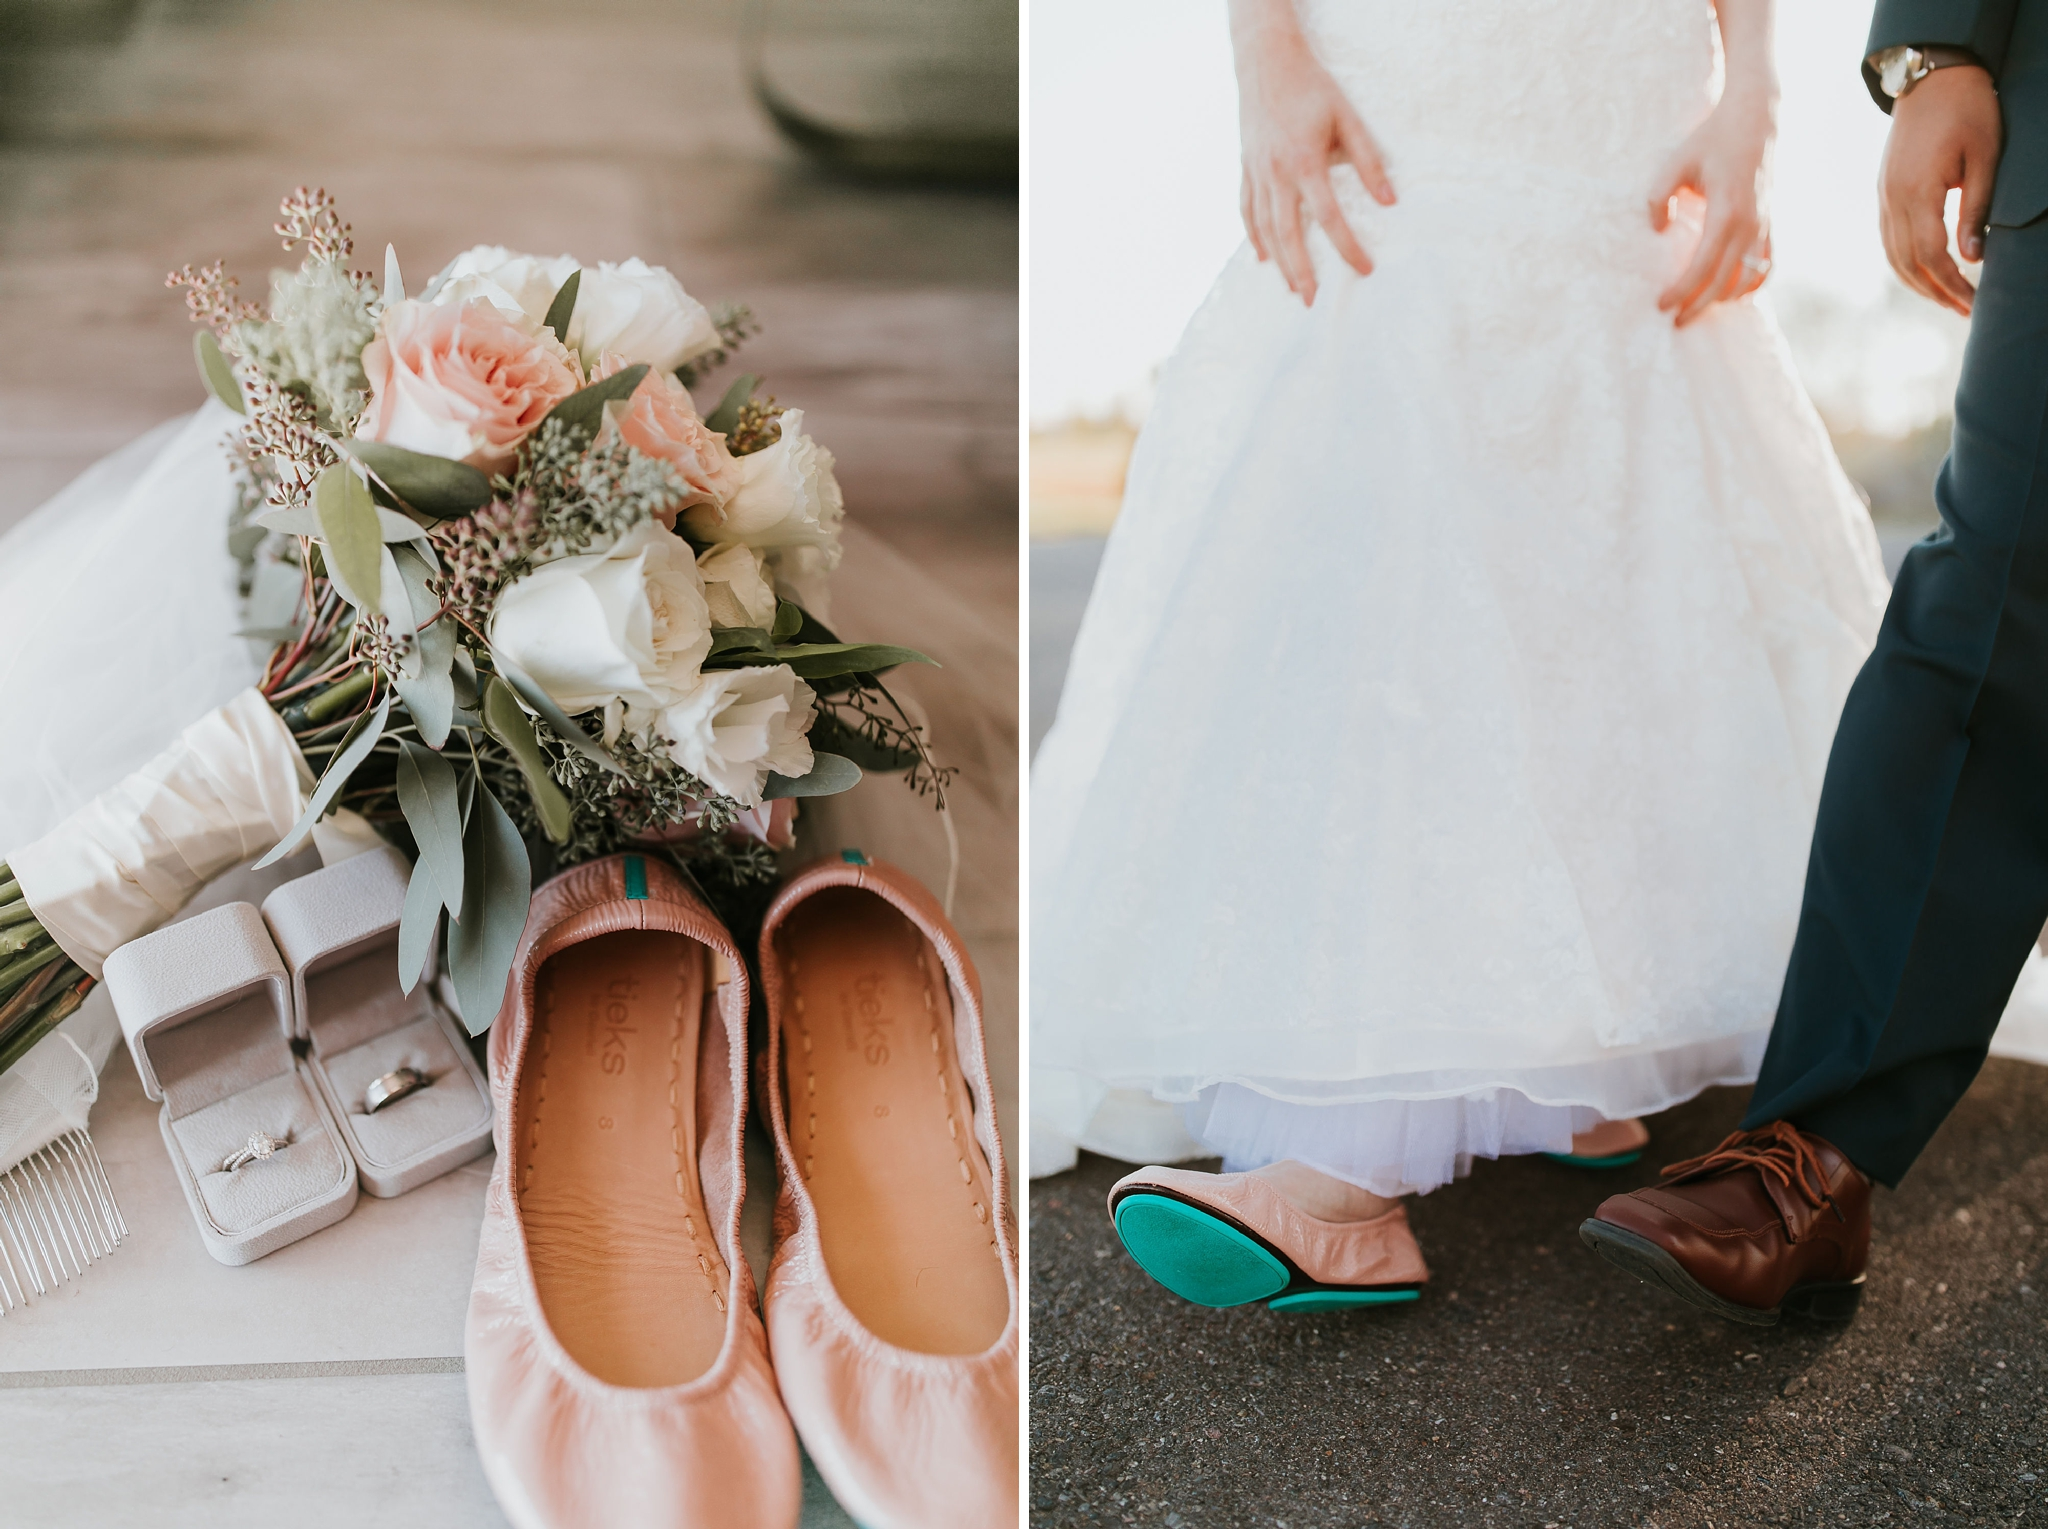 Alicia+lucia+photography+-+albuquerque+wedding+photographer+-+santa+fe+wedding+photography+-+new+mexico+wedding+photographer+-+new+mexico+wedding+-+new+mexico+wedding+-+colorado+wedding+-+bridal+shoes+-+bridal+inspo_0032.jpg